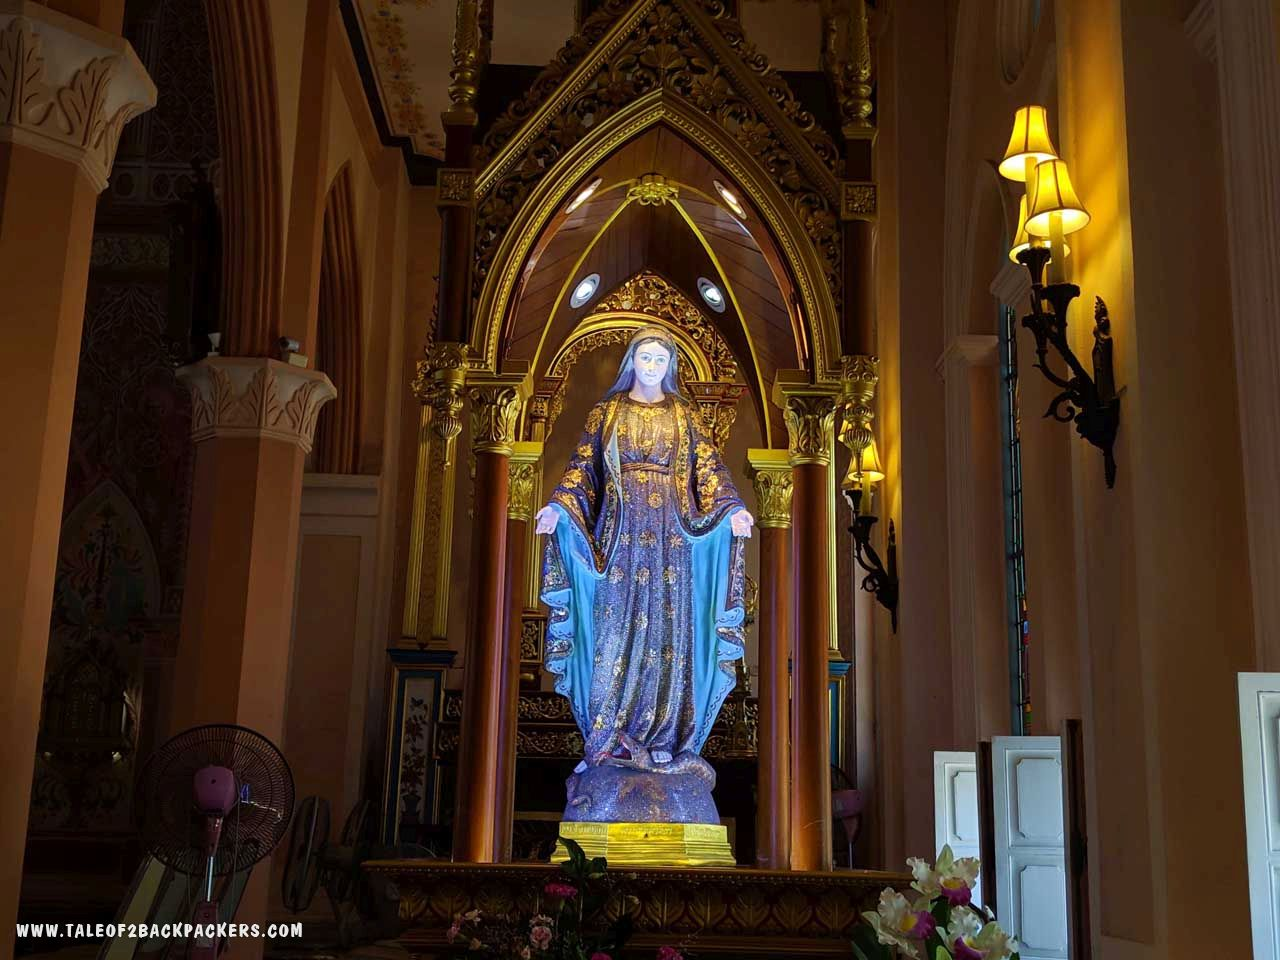 The statue of Virgin Mary at Cathedral of Immaculate Conception, Chanthaburi is said to be studded with more than 200000 glittering semi-precious stones.